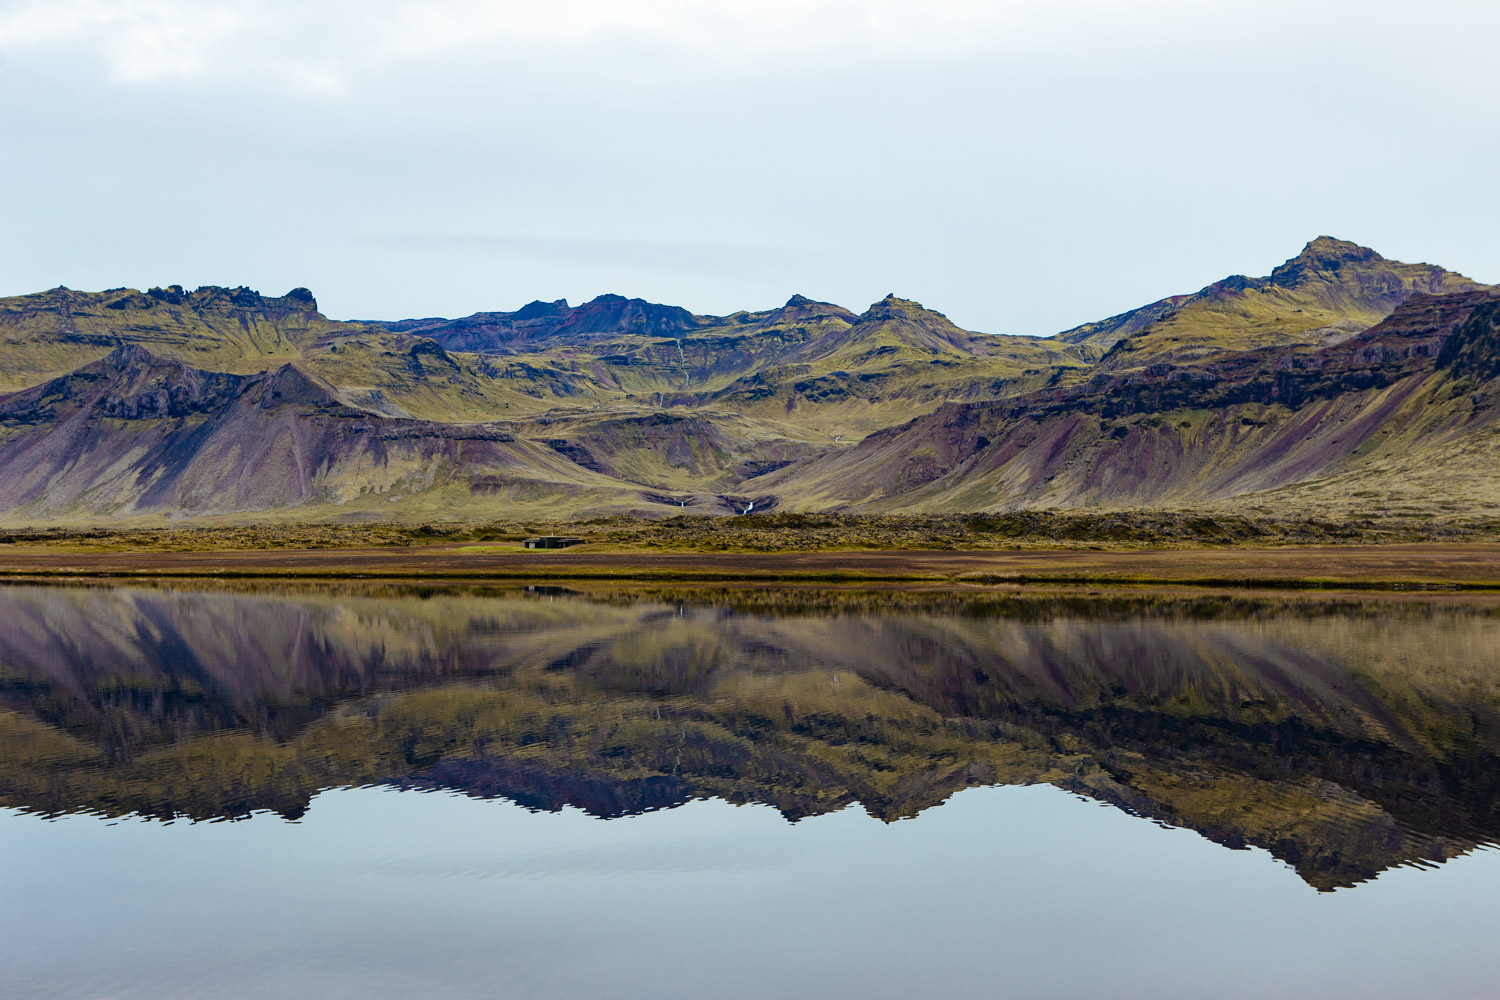 Touring-Iceland-13a.jpg